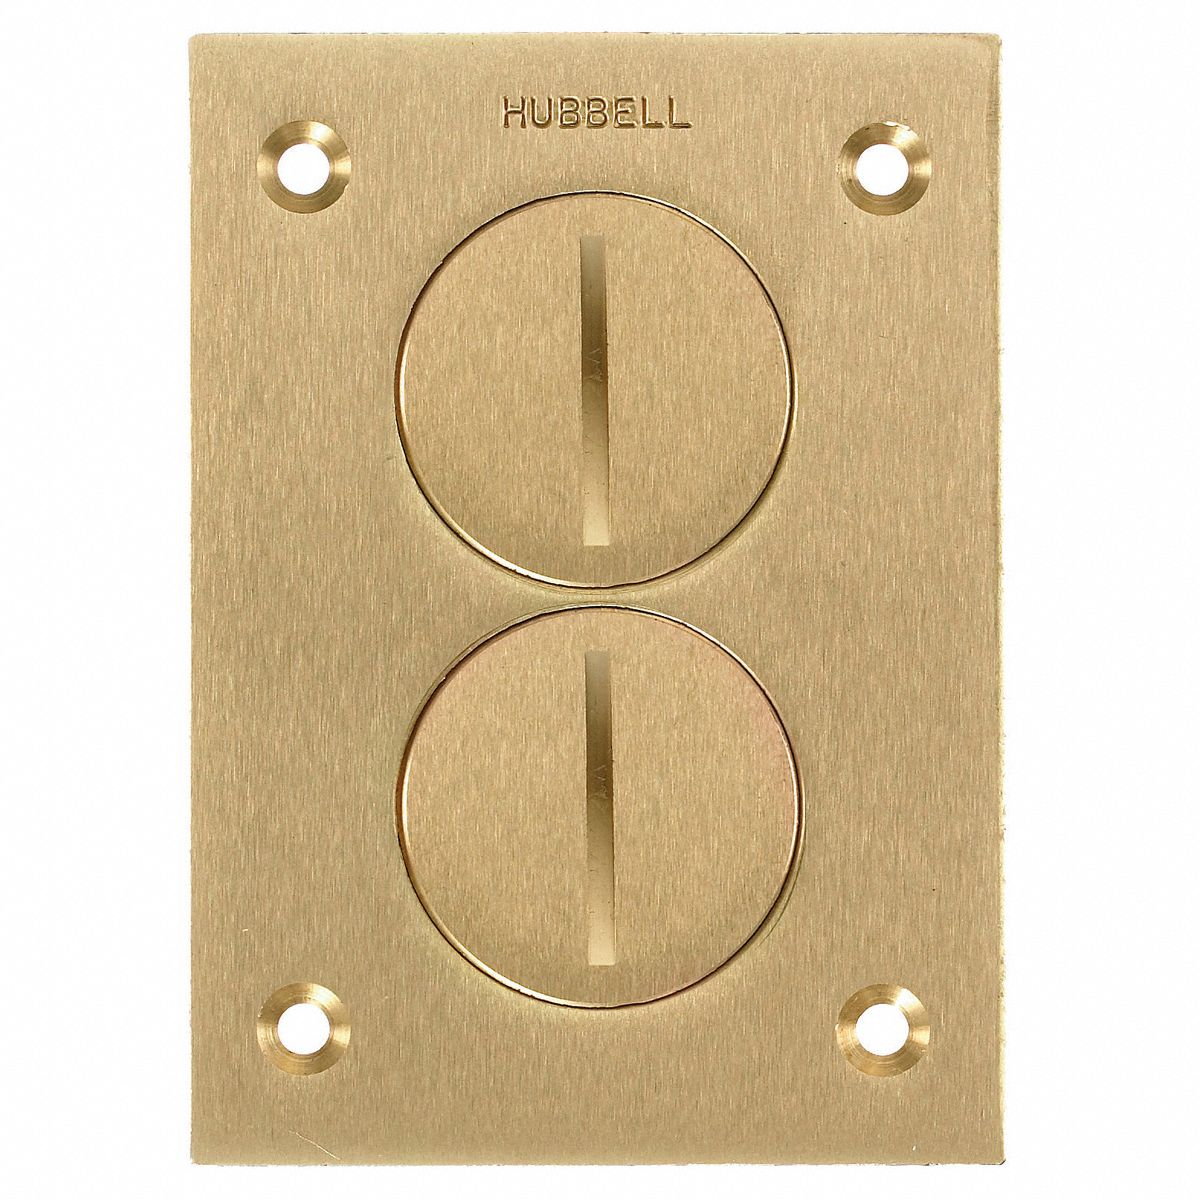 HUBBELL WIRING DEVICE-KELLEMS SA2425 Floor Box Cover,2-Gang,3 in.